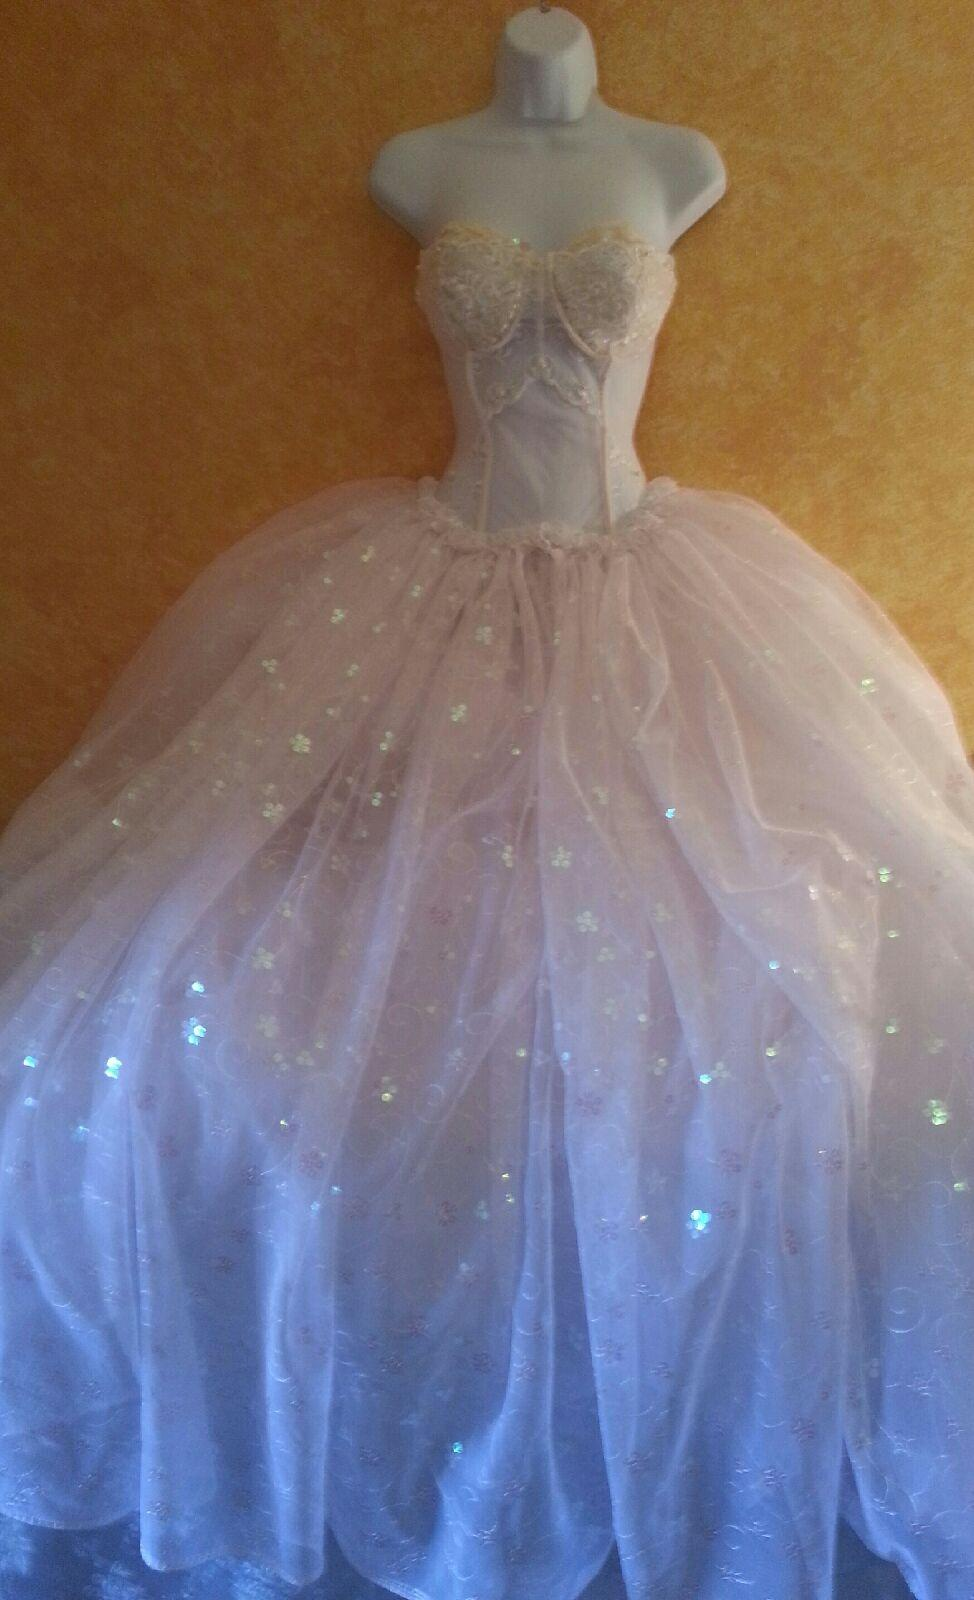 Iridescent White Goddess Ballgown Wedding Dress 25 Off